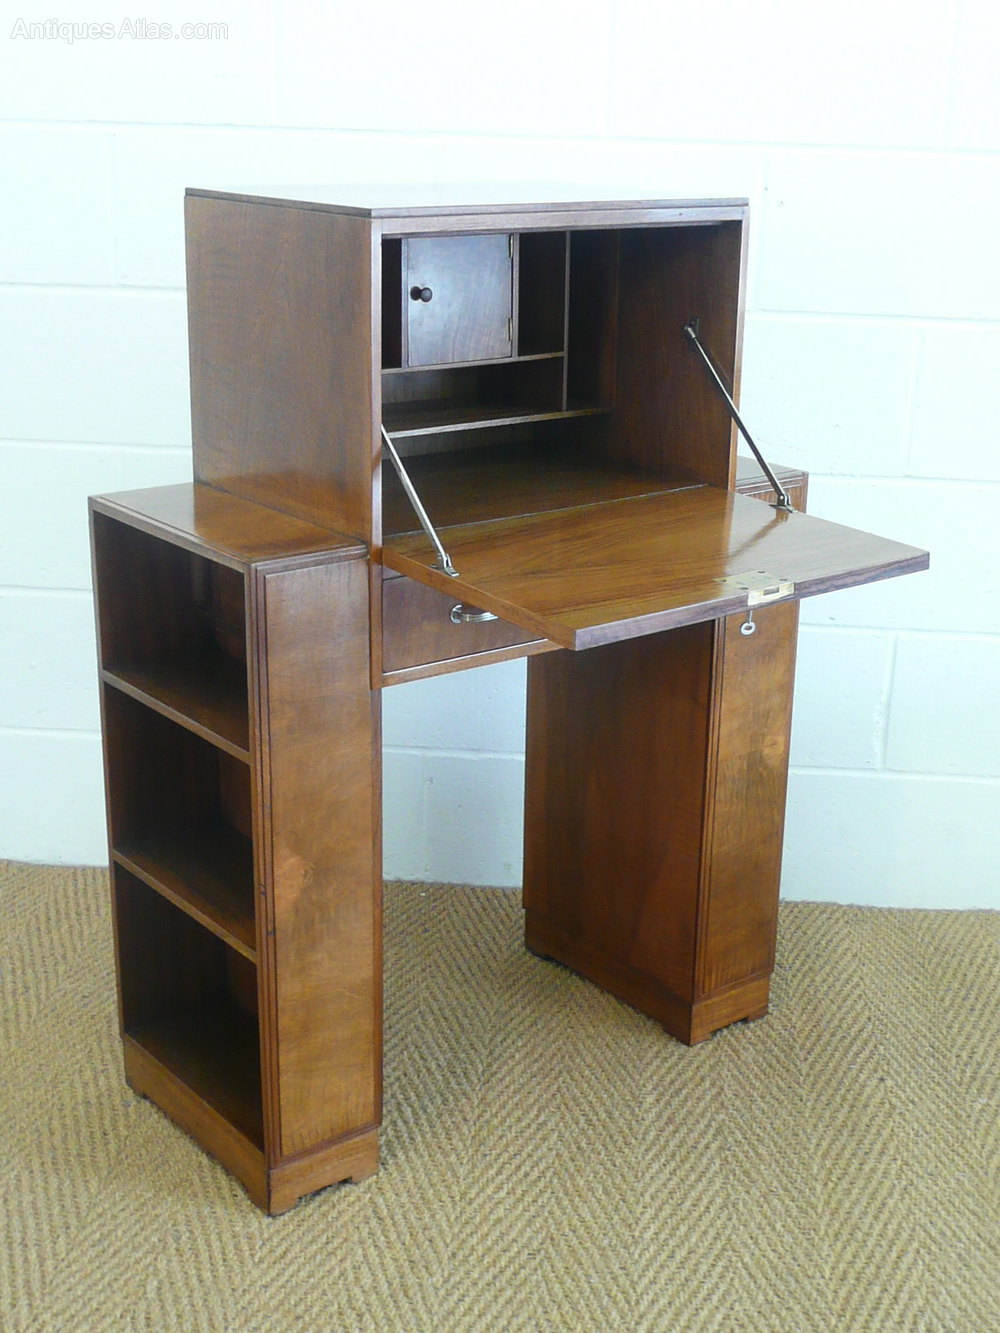 heal 39 s art deco walnut bureau bookcase antiques atlas. Black Bedroom Furniture Sets. Home Design Ideas